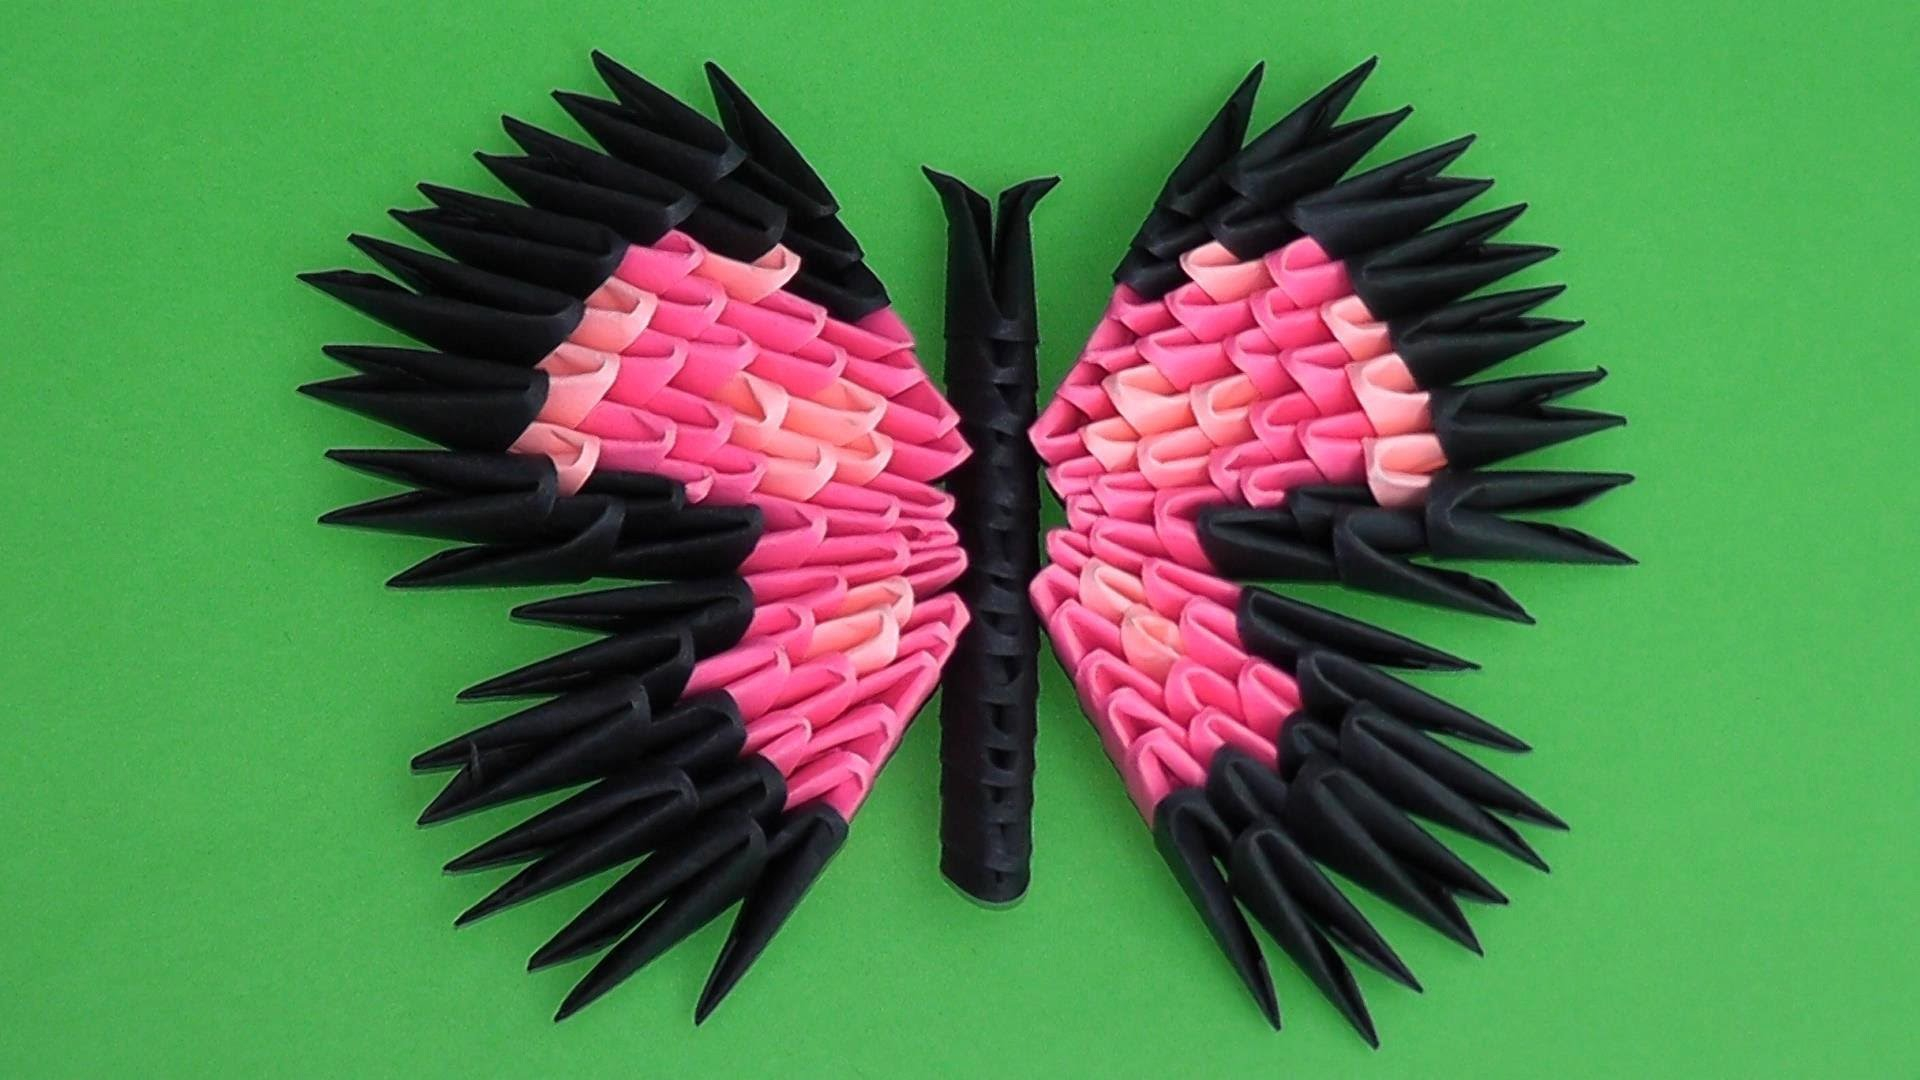 How To Make A 3D Origami Butterfly 3d Origami Butterfly Assembly Diagram Tutorial Instructions Variant 3